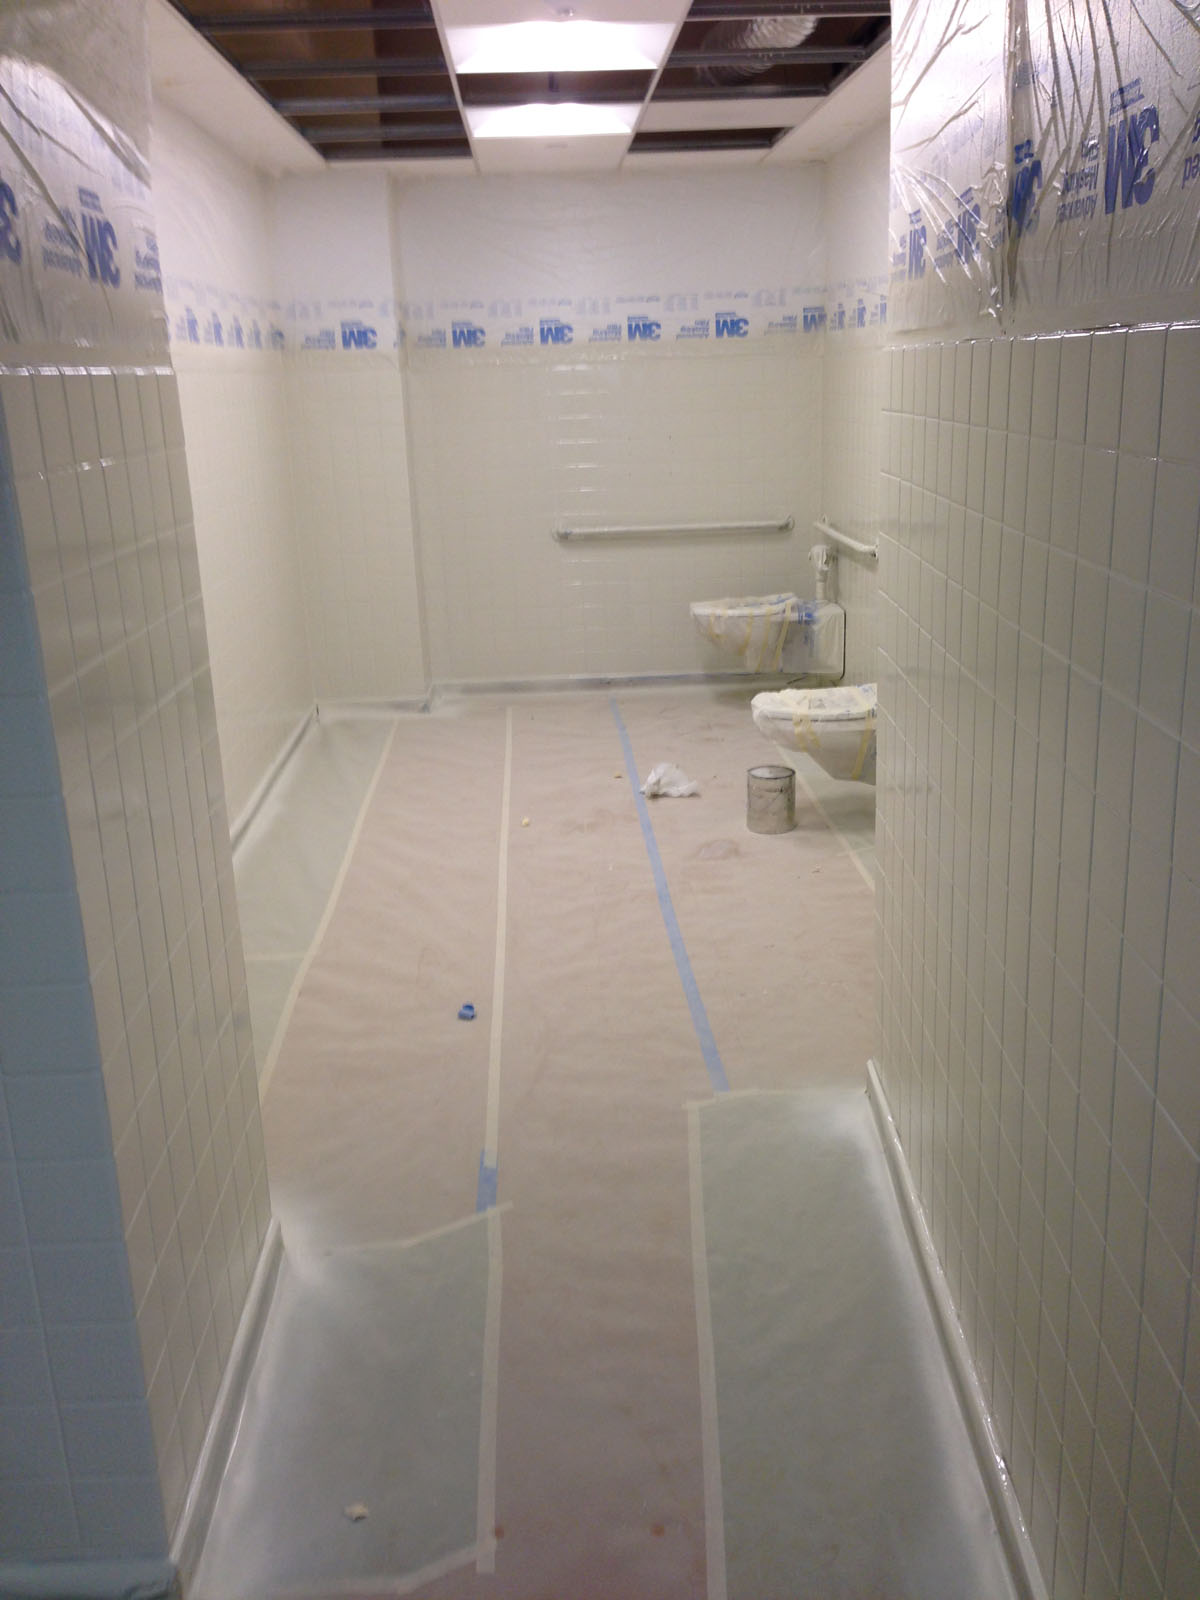 60 State St. Boston - Commercial Bathroom Refinishing - After